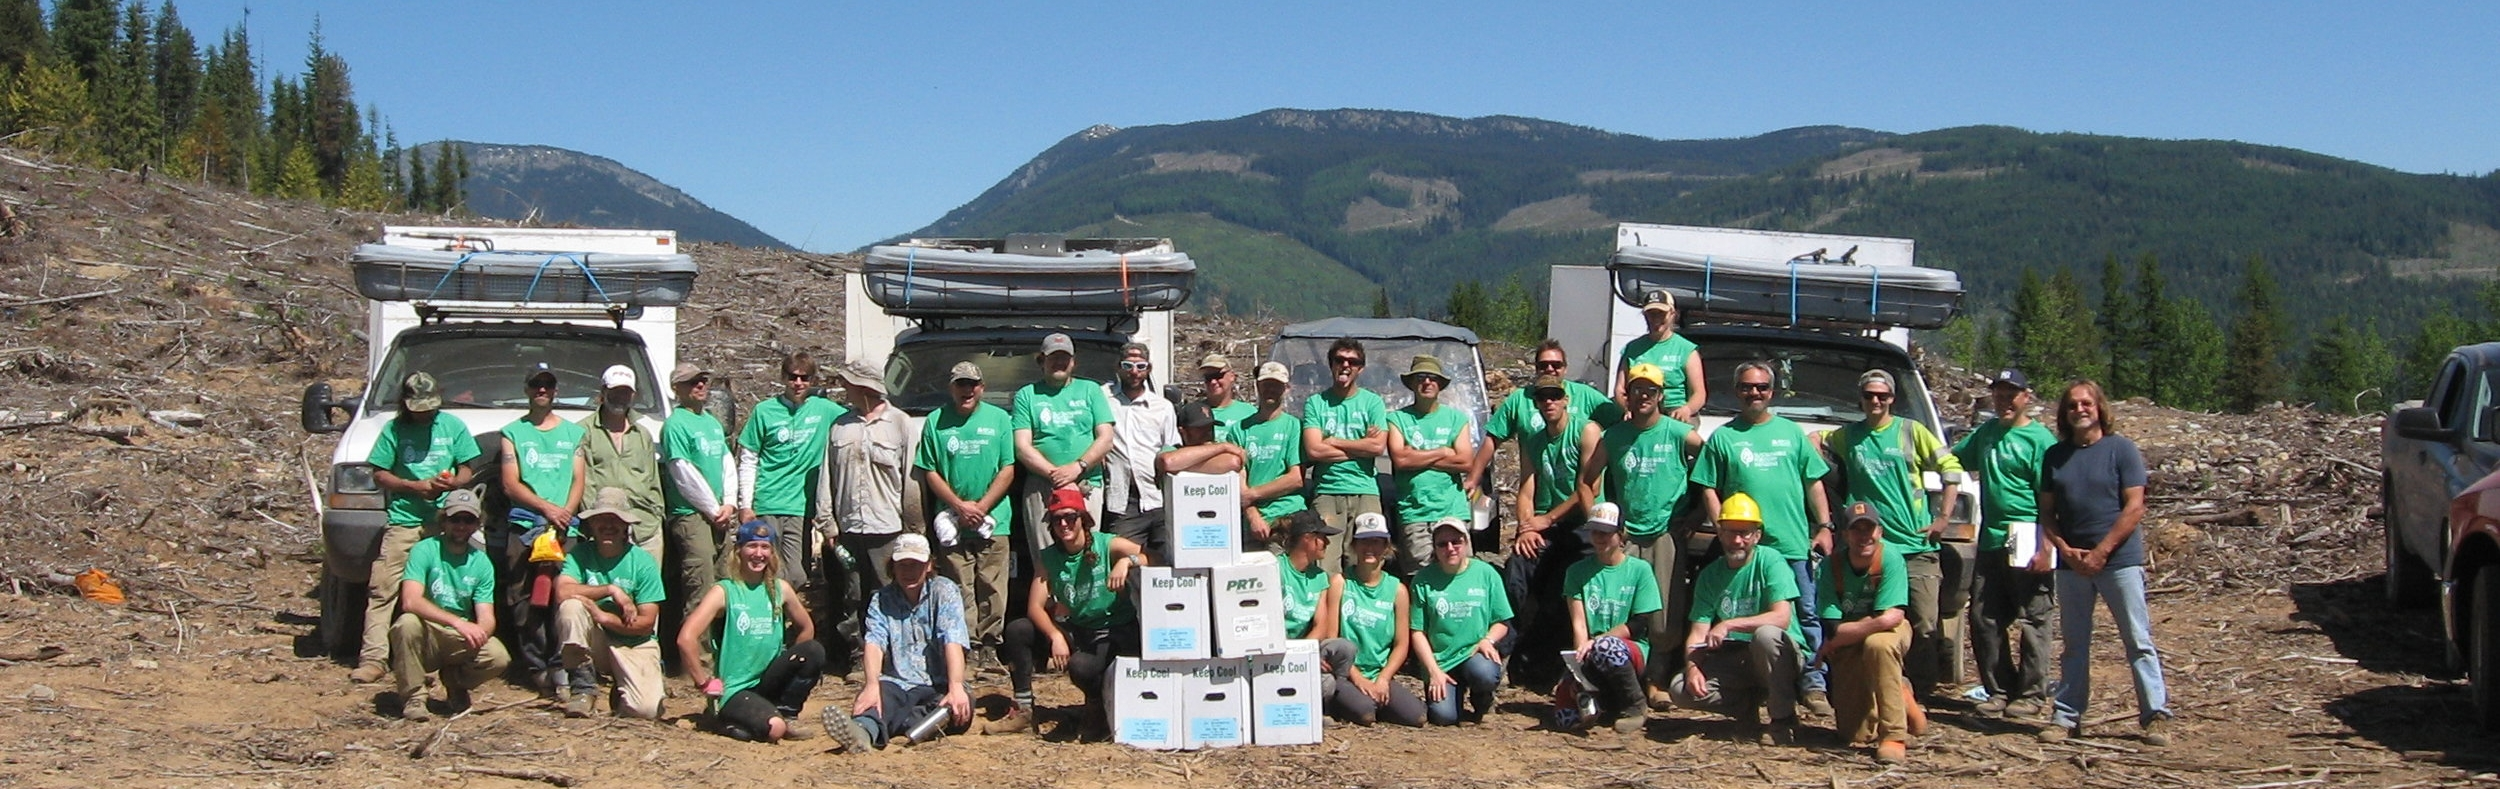 On May 20, 2015, ATCO Wood Products staff and their tree planting contractor, Greenpeaks, joined an international effort to set the Guinness World Record for the most trees planted in one hour simultaneously by teams made up of 25 to 100 people. A total number 29 teams in a variety of locations planted 202,935 trees - 7,785 which were planted by Greenpeaks and ATCO Wood Products staff.